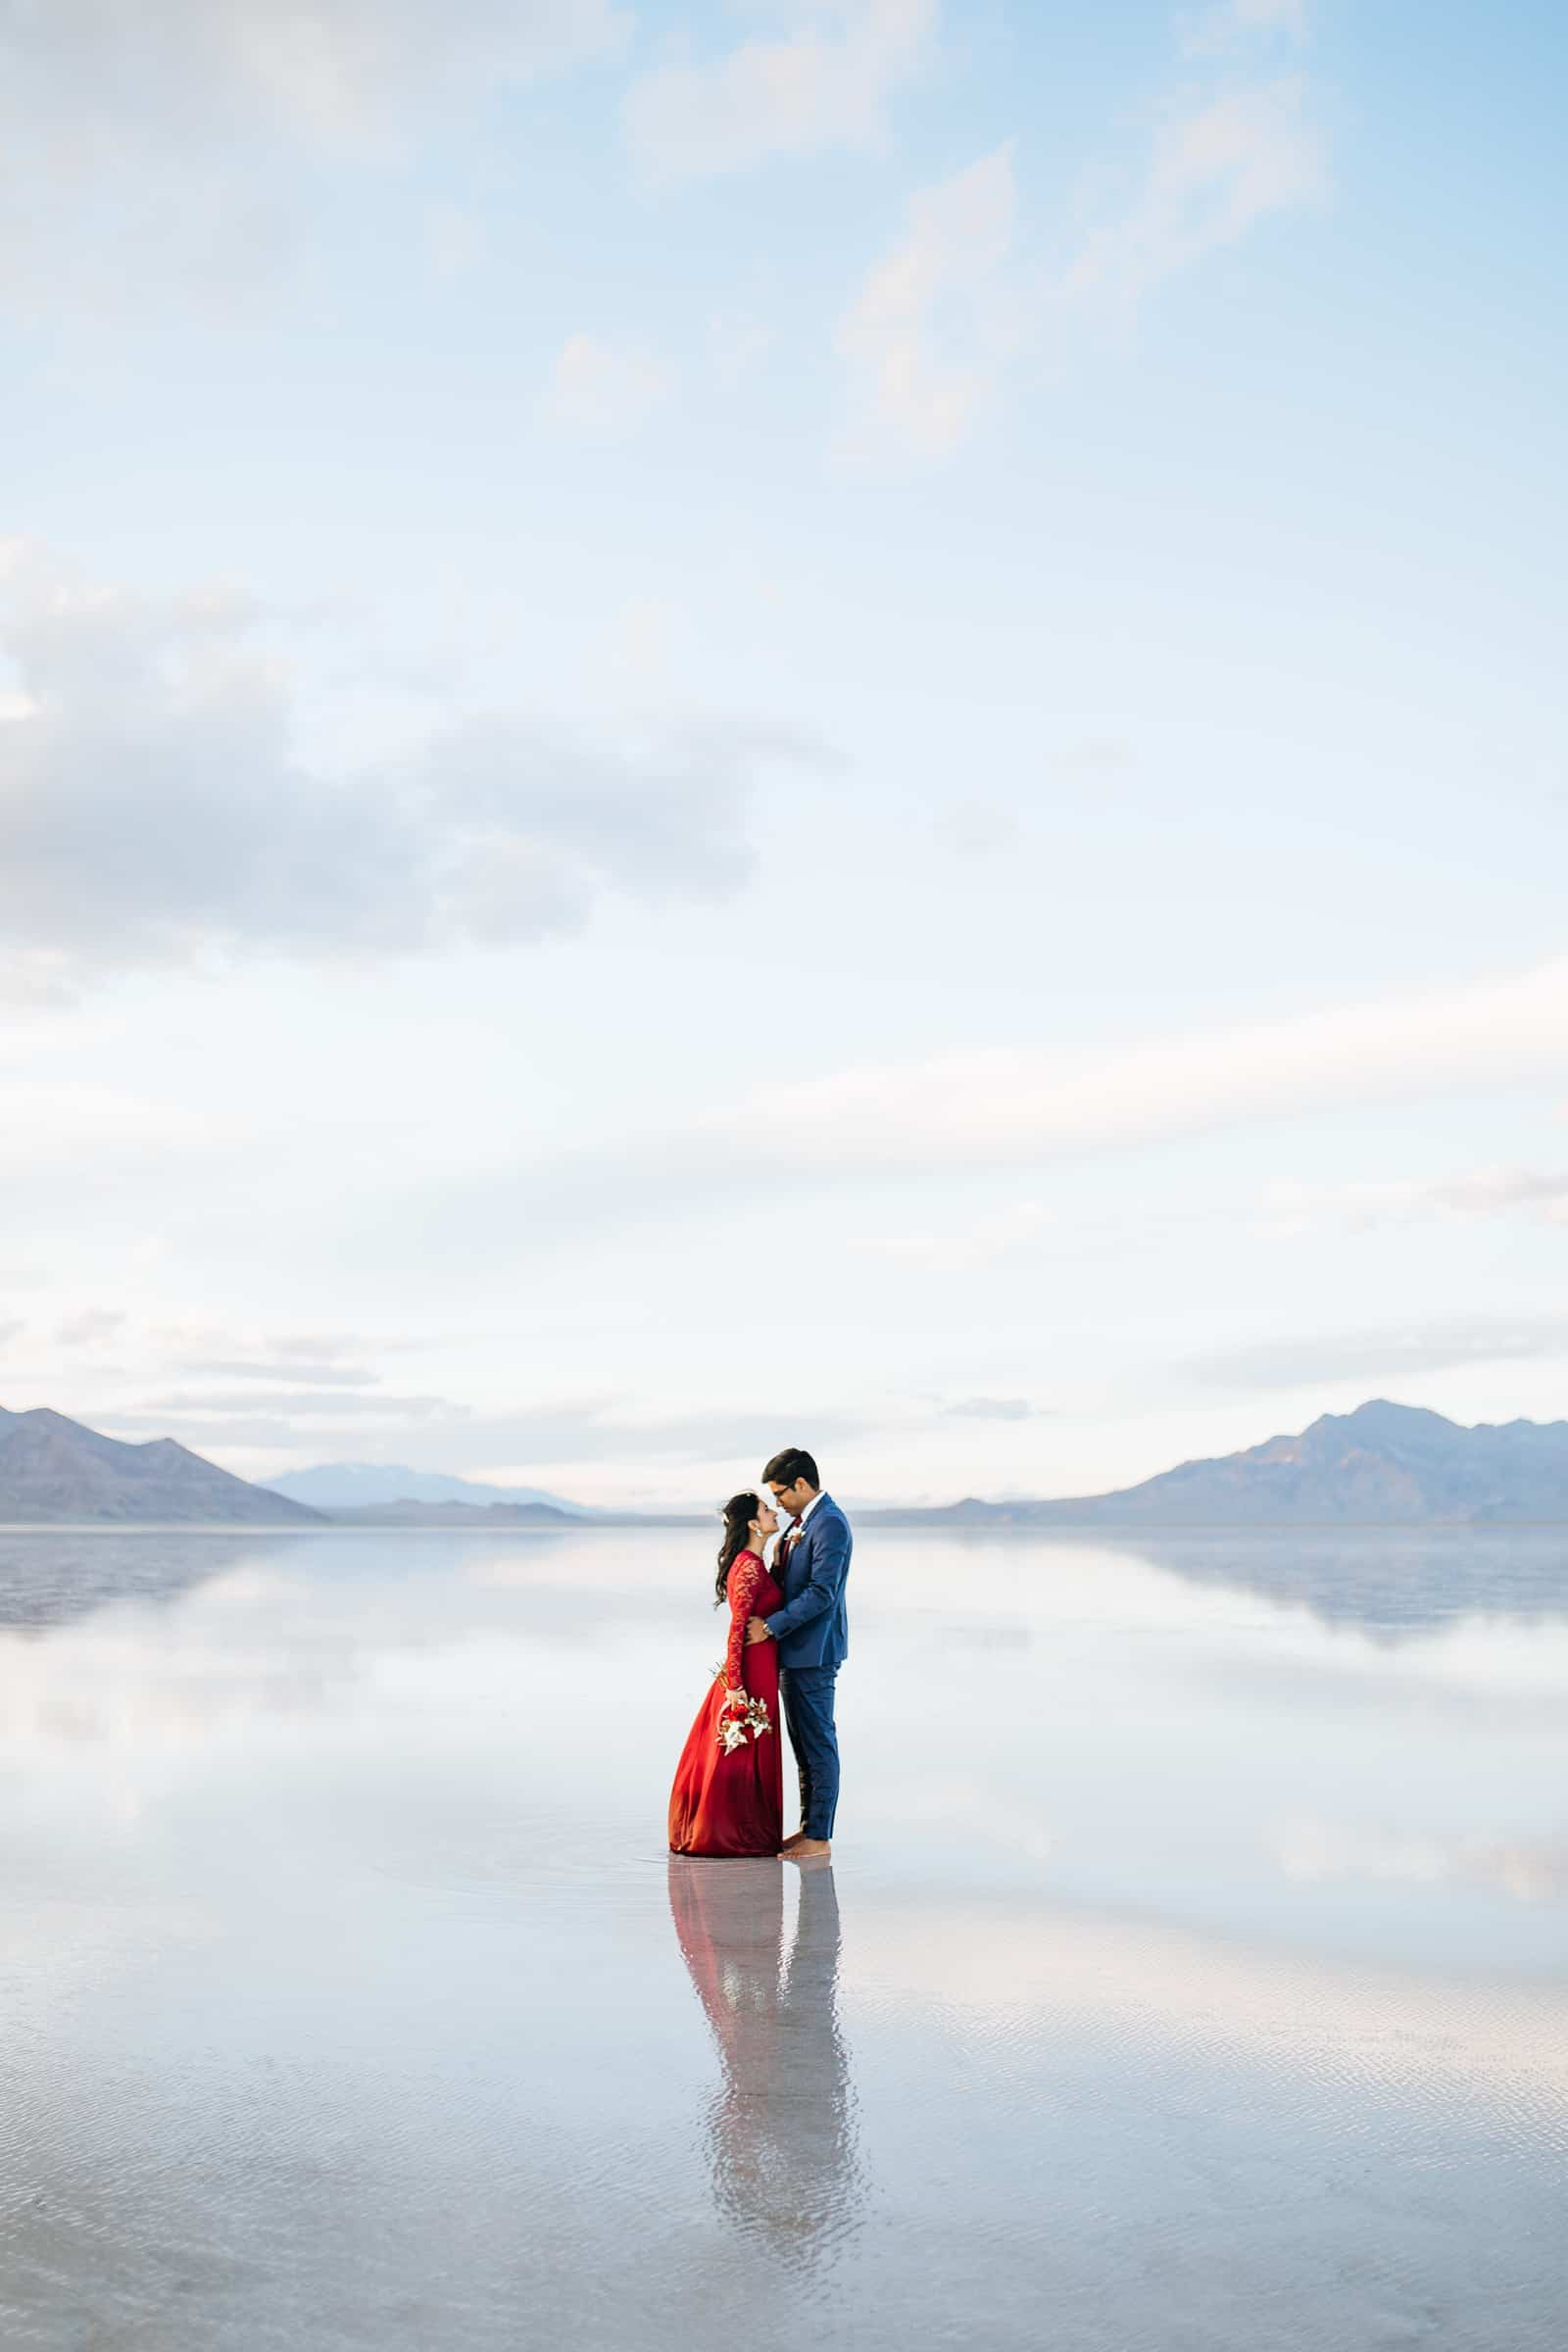 Bonneville Salt Flats Engagement Photos, Utah engagement session, engagement photography, red dress, clouds, water reflection, destination wedding